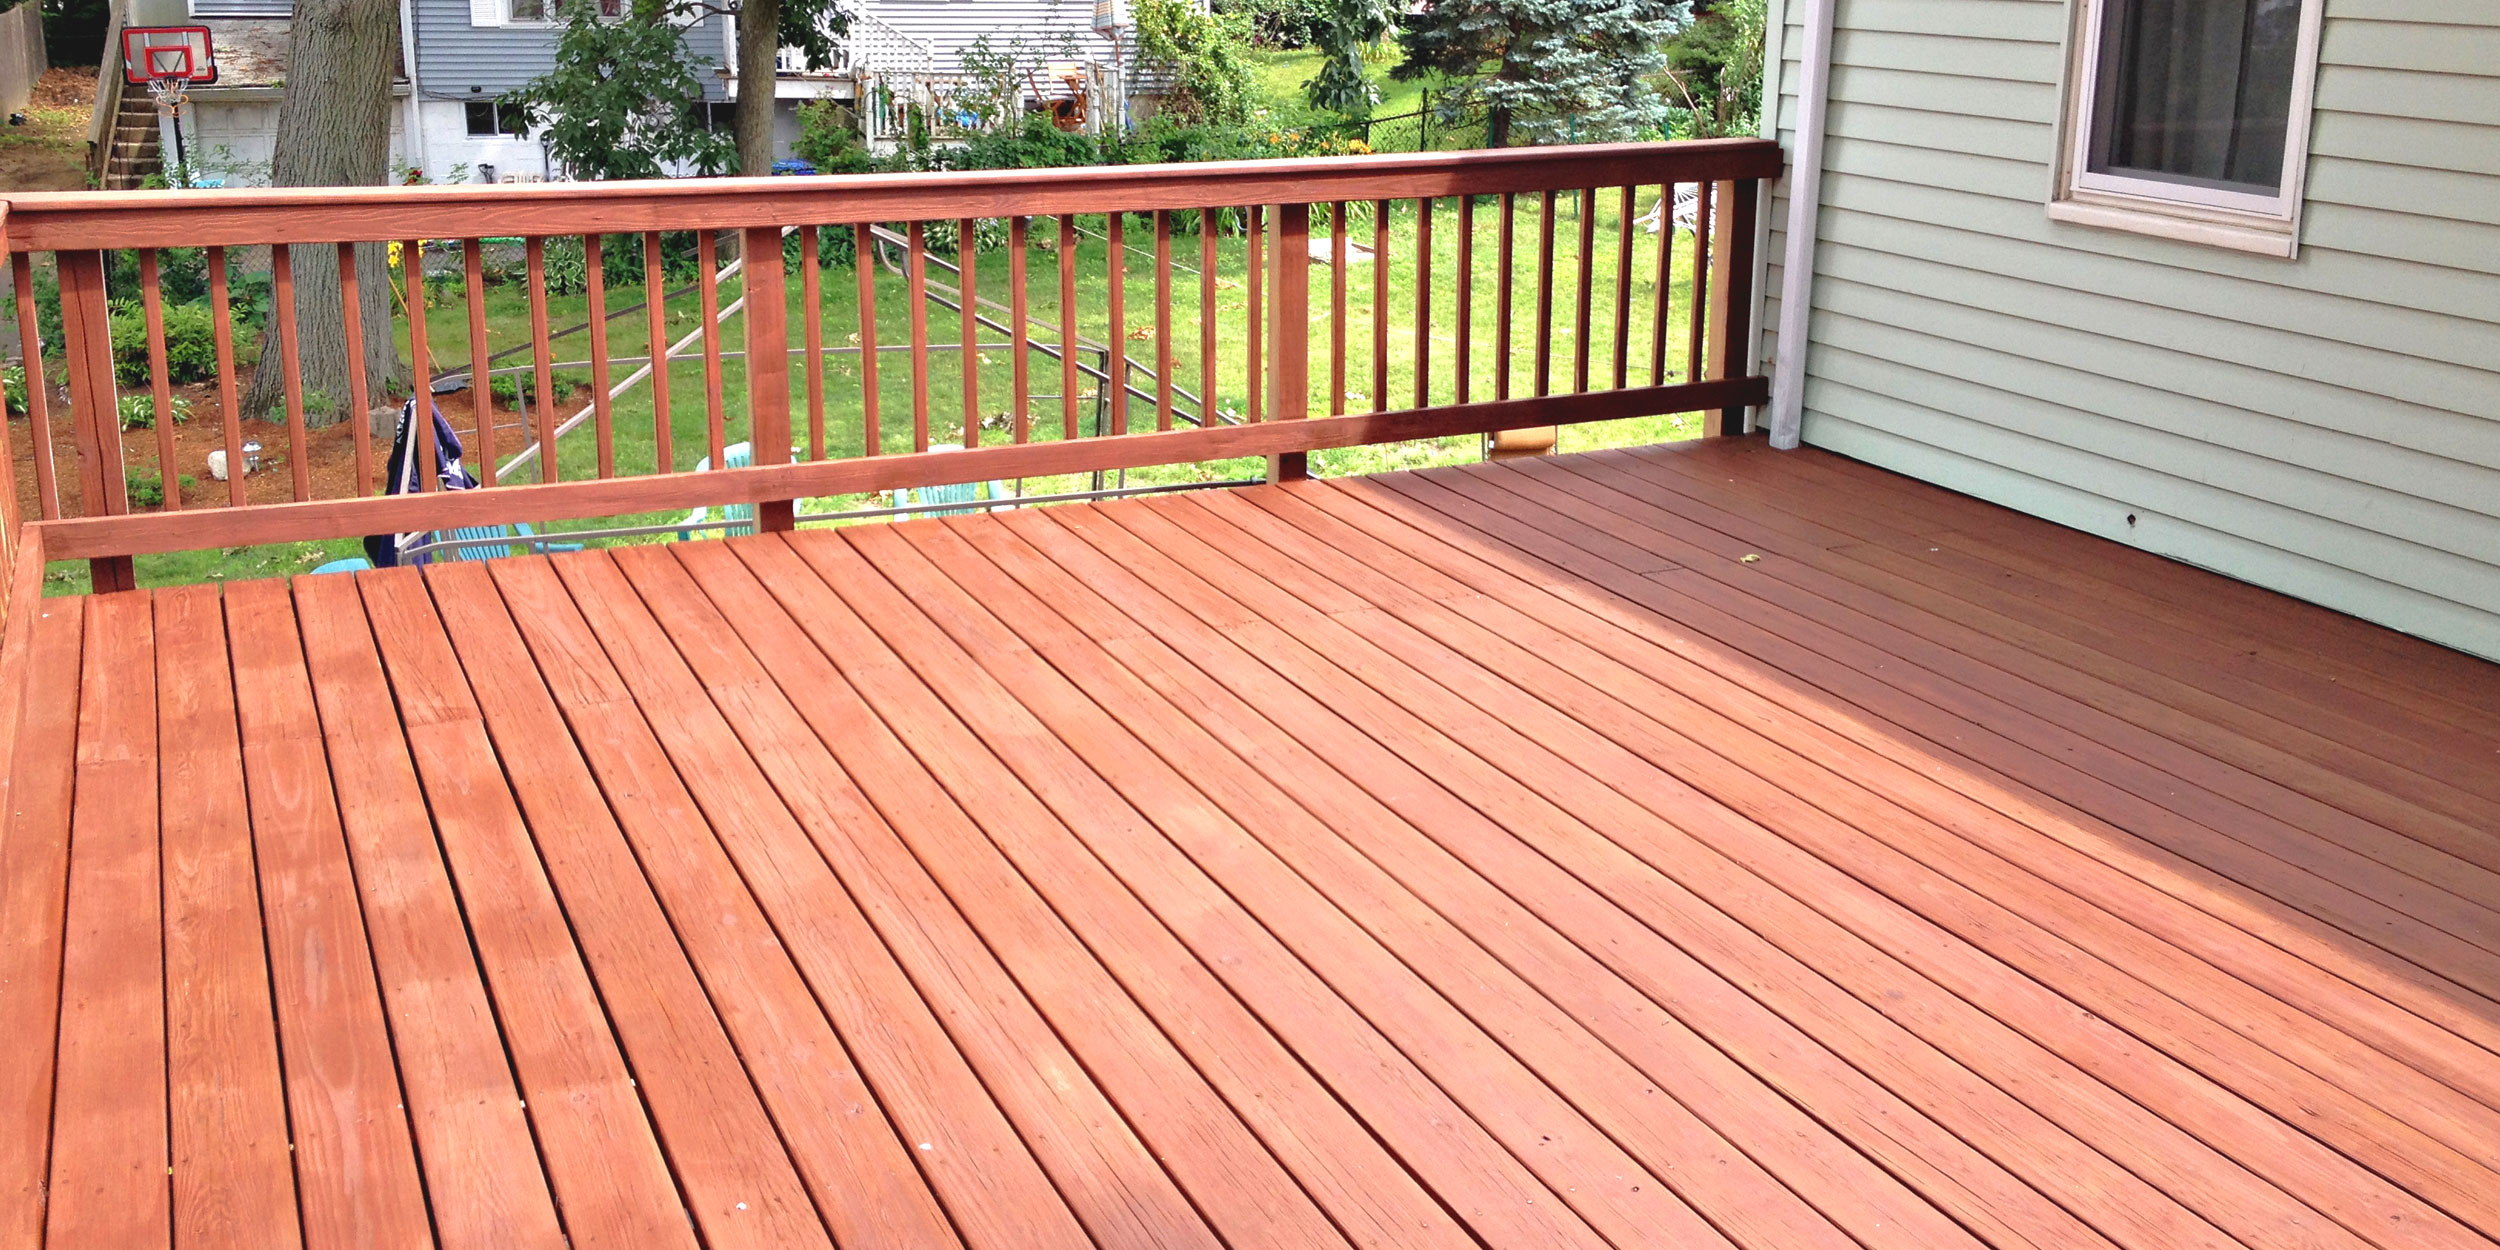 Exterior deck staining done by Mystic Painting Co. in Wakefield, MA